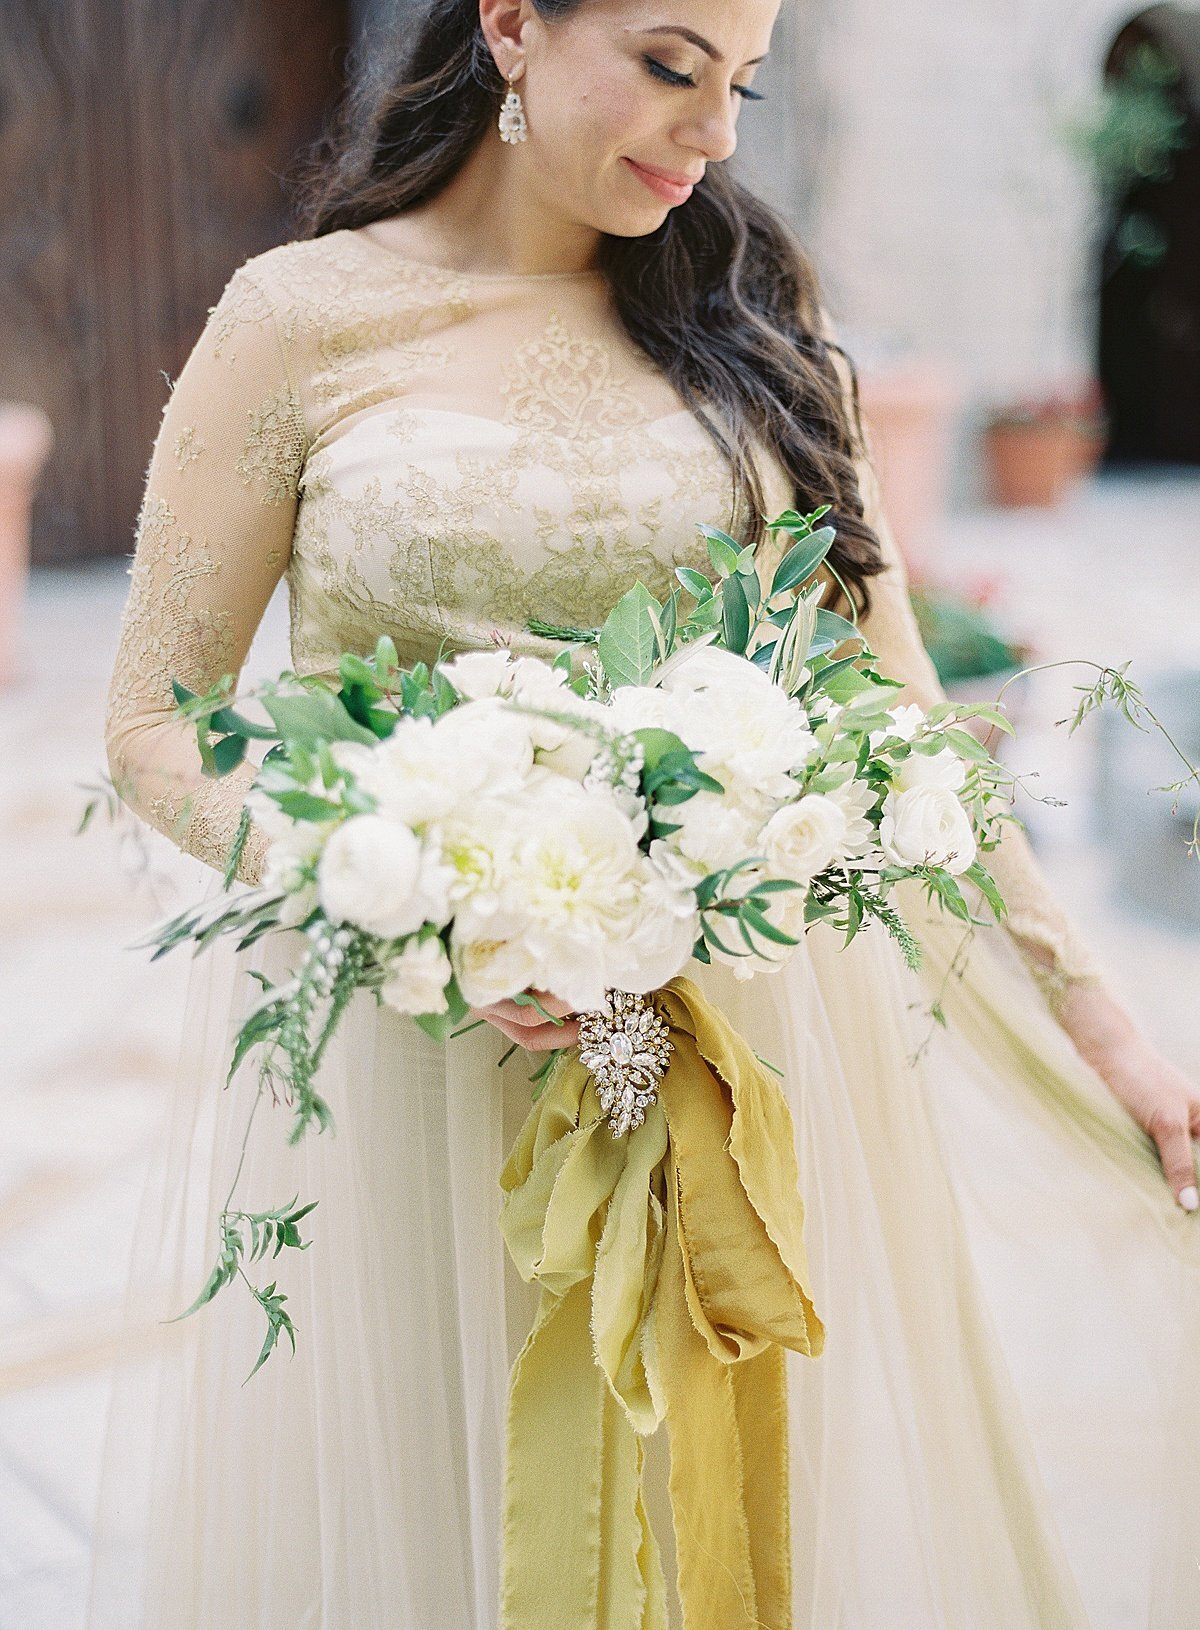 Posh Peony Mission Inn Lush Gray and Gold Greenery Wedding Flowers_0009